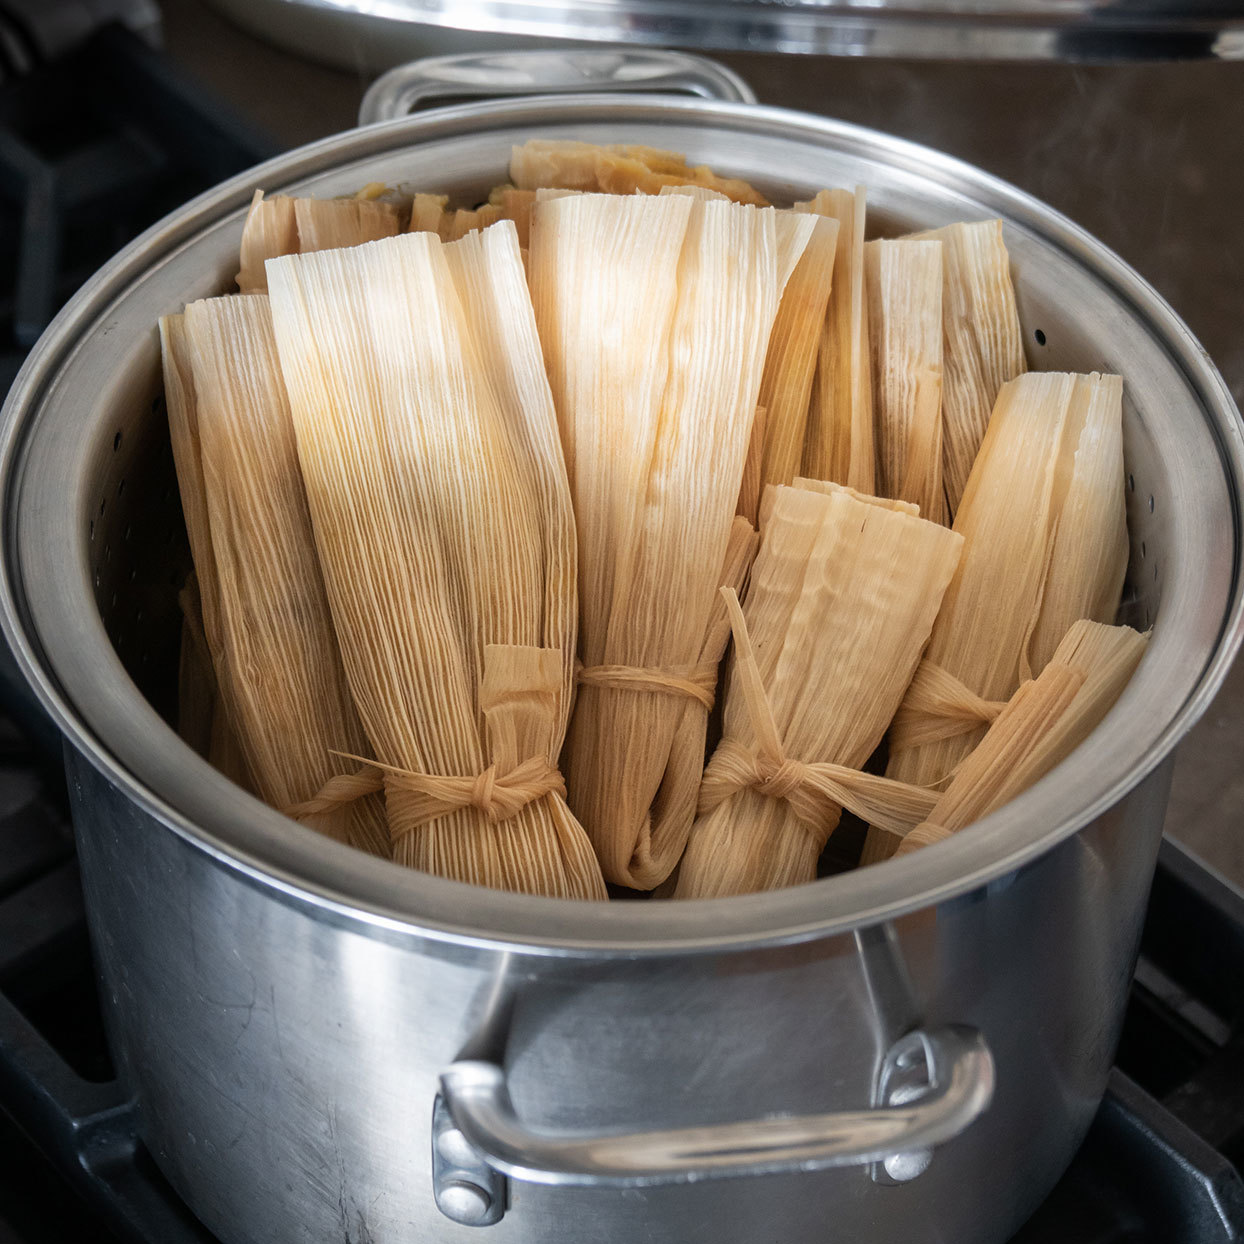 steaming tamales in corn husks in a pot